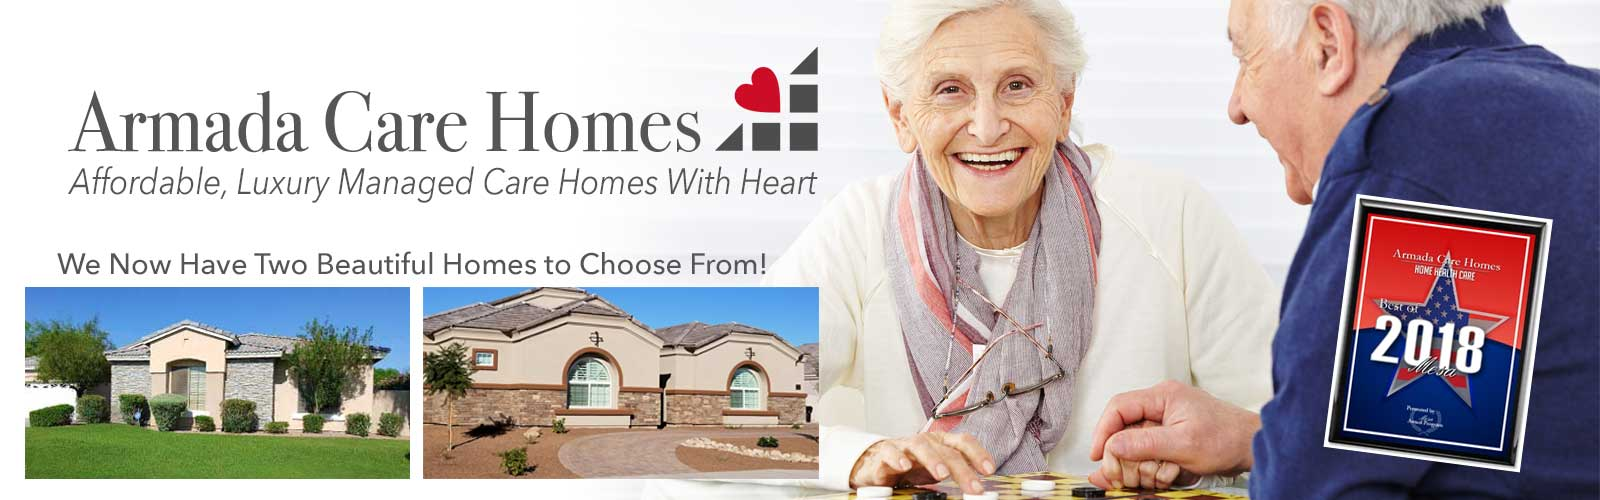 Armada Care Homes